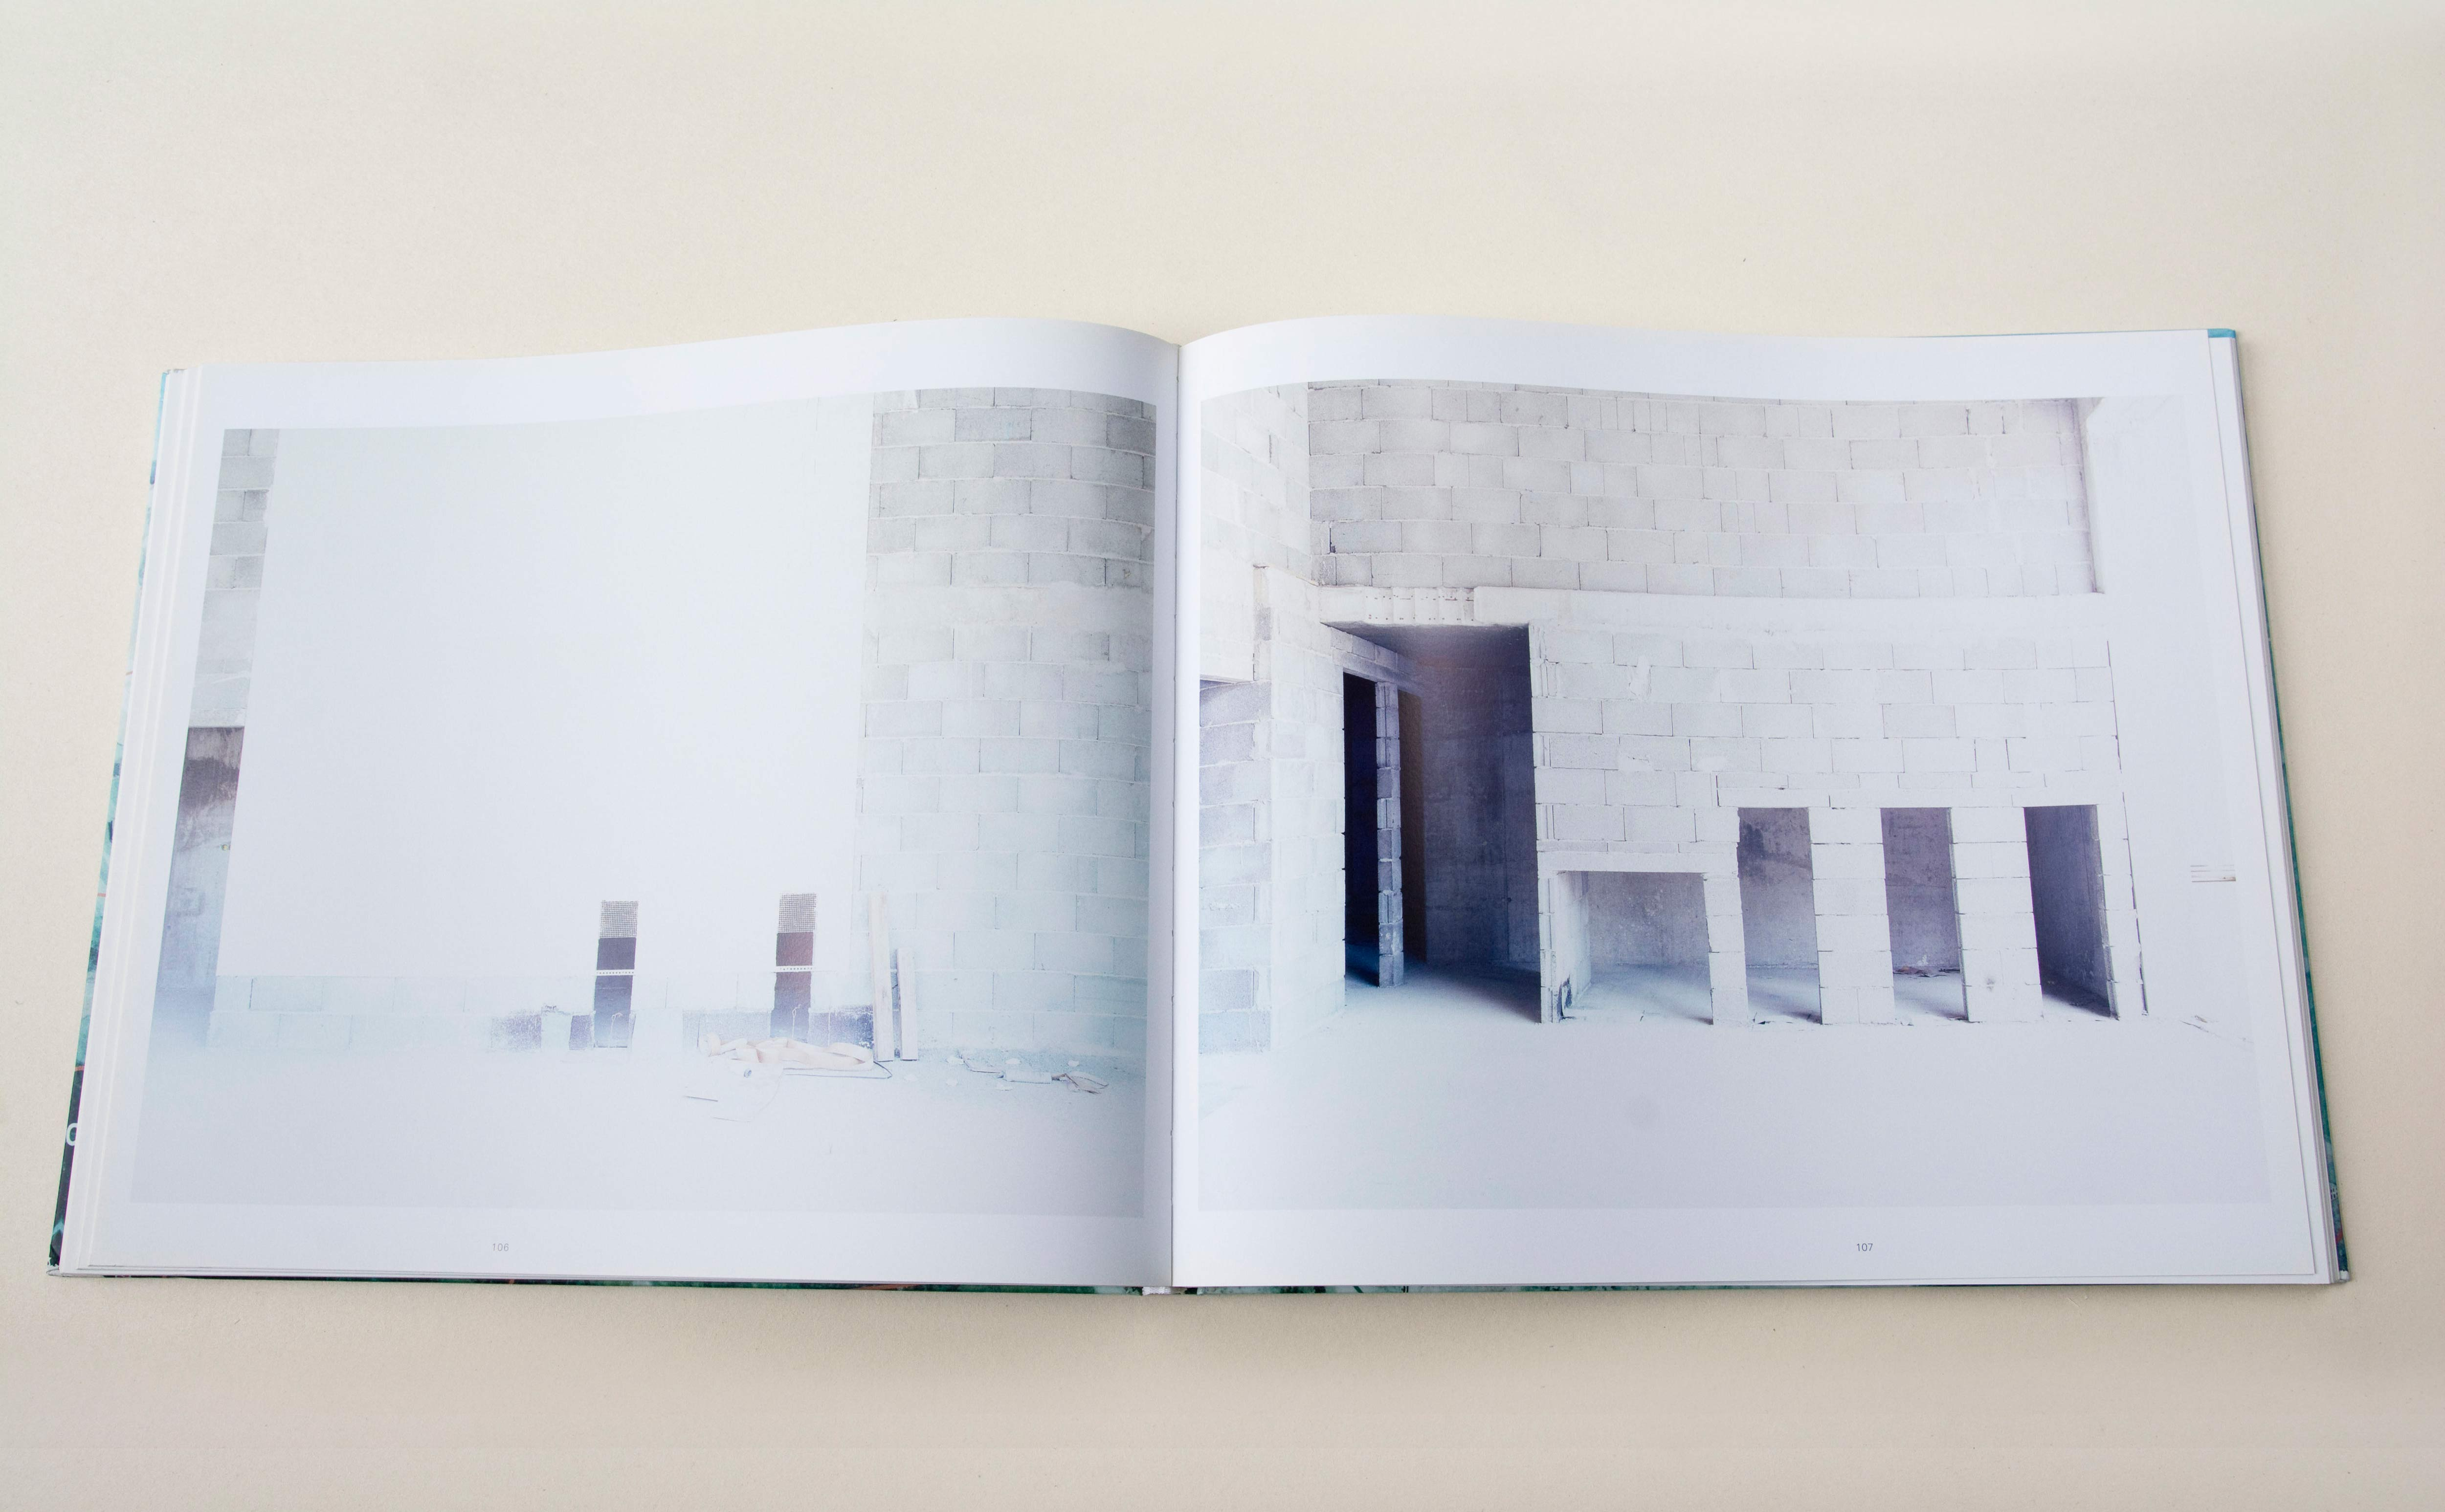 Double page. Large photo with white space around on each page. Left: Grey brick wall in construction. Right: Inside a building made of grey bricks.